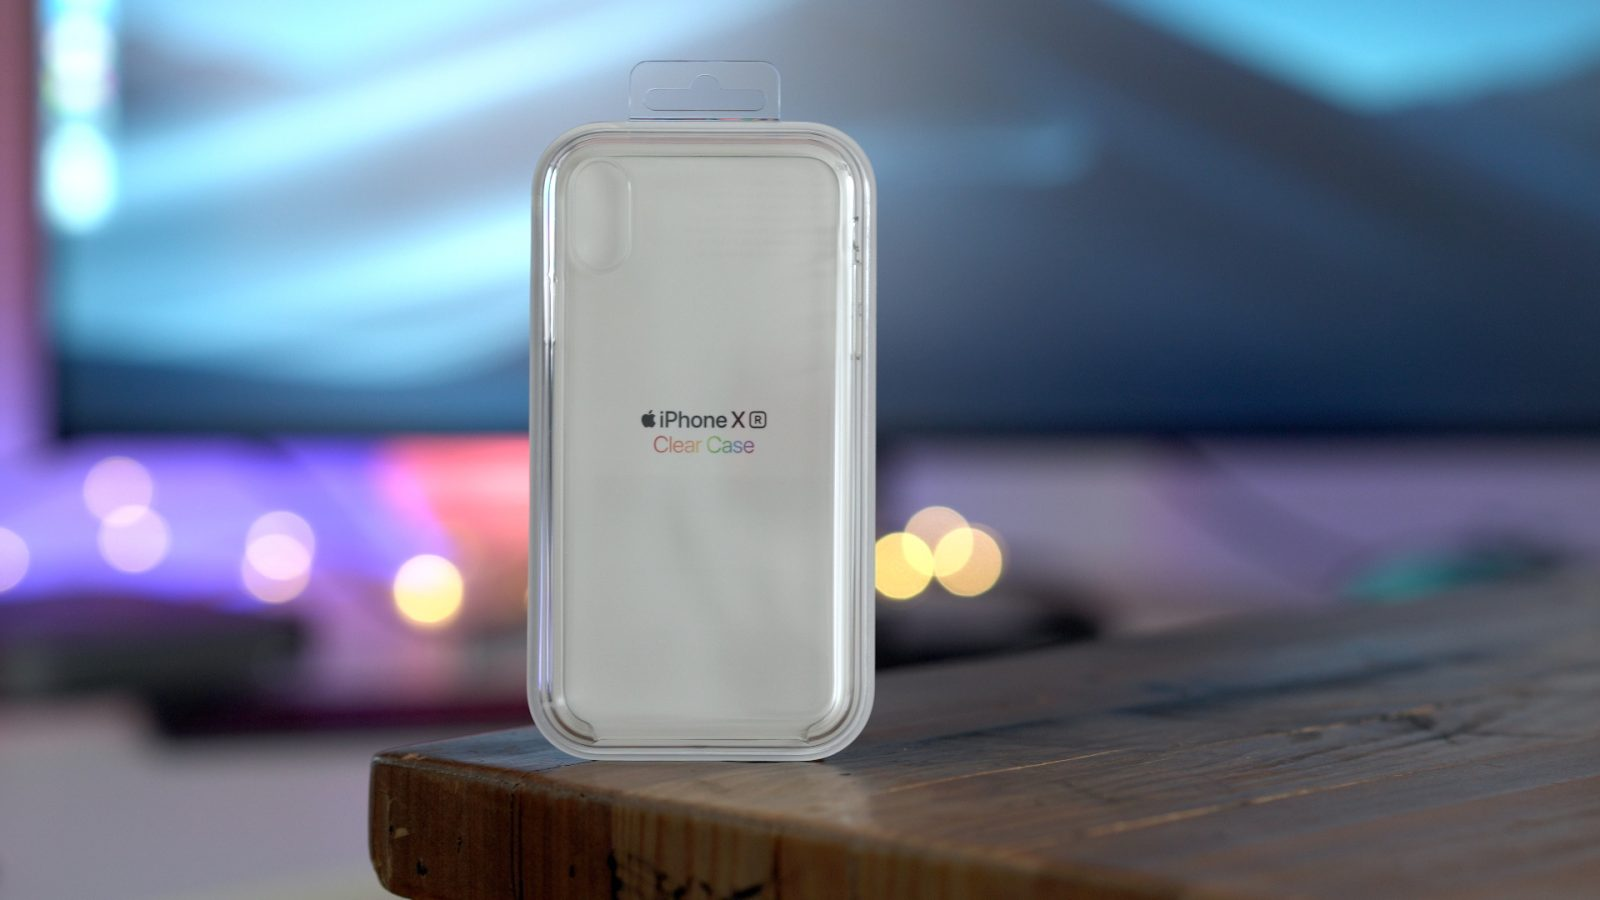 Review: iPhone XR Clear Case – is it worth the premium price? [Video]